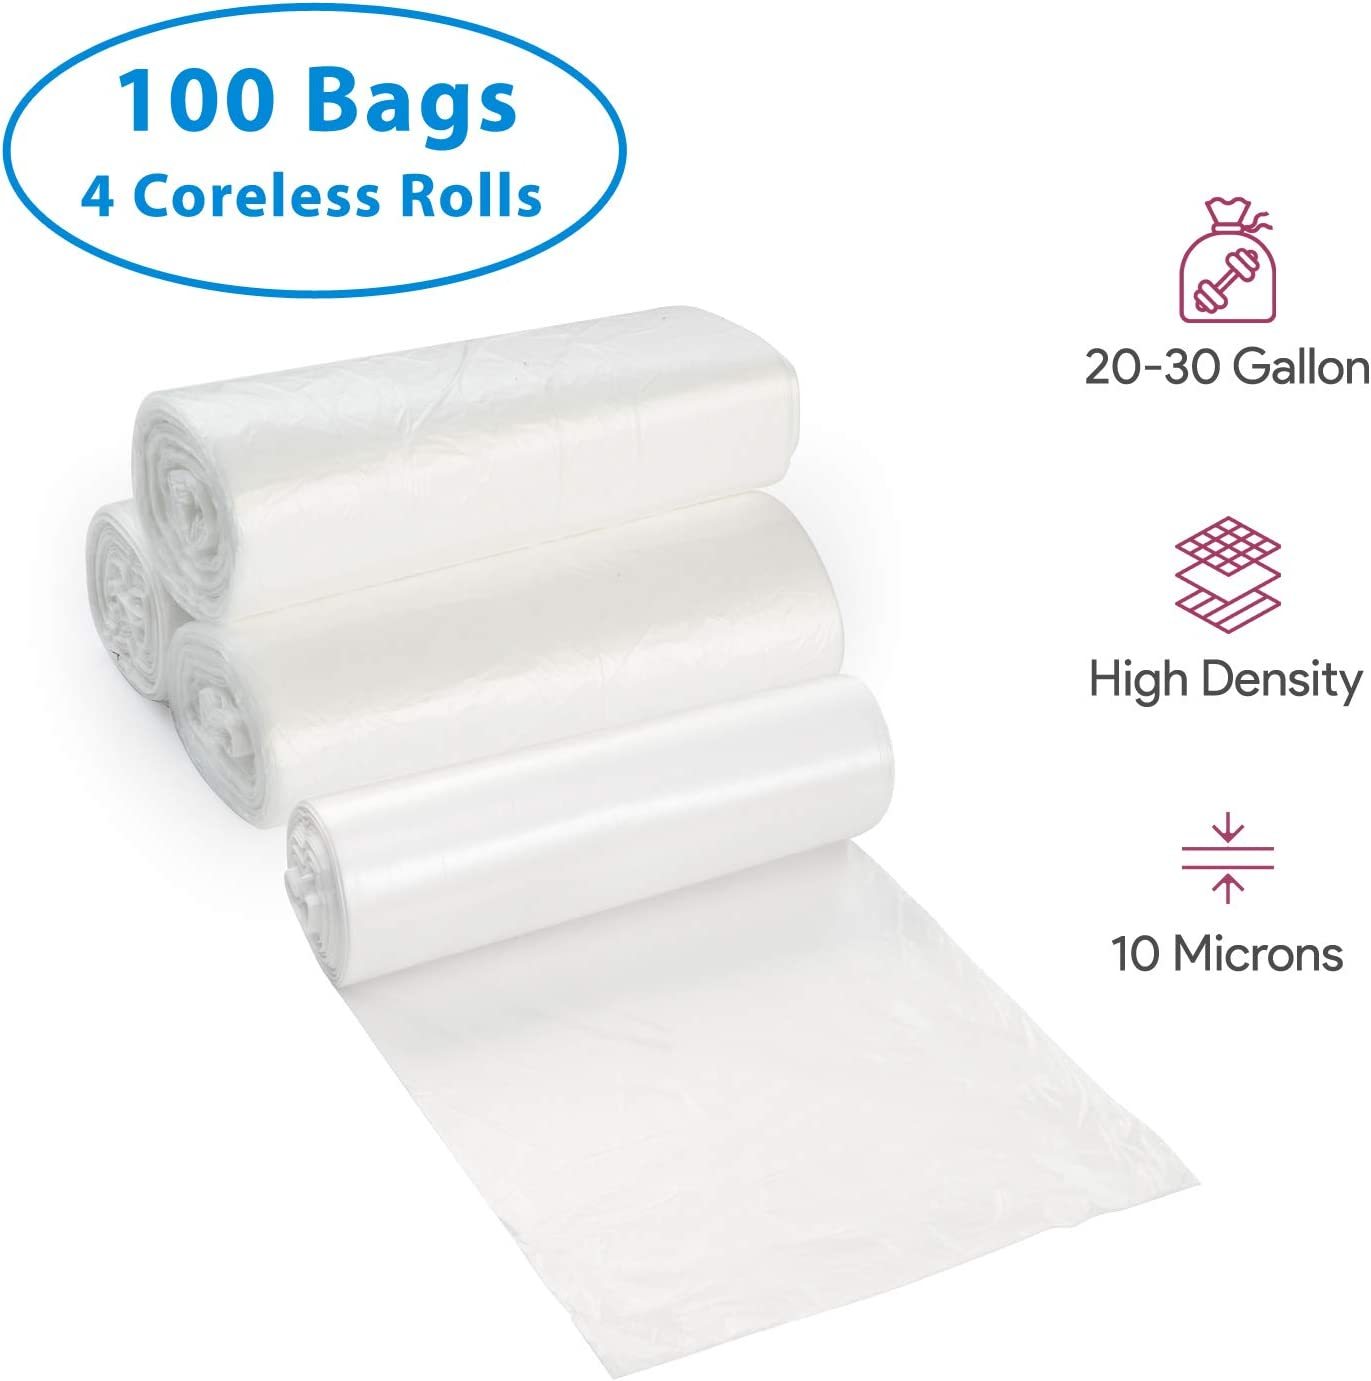 20-30 Gallon Clear Garbage Can Liners, 100 Count - Medium - Large Trash Can Liners - High Density, Thin, Lightweight, 10 Microns - For Office, Home, Hospital, Wastebaskets - 4 Coreless Rolls